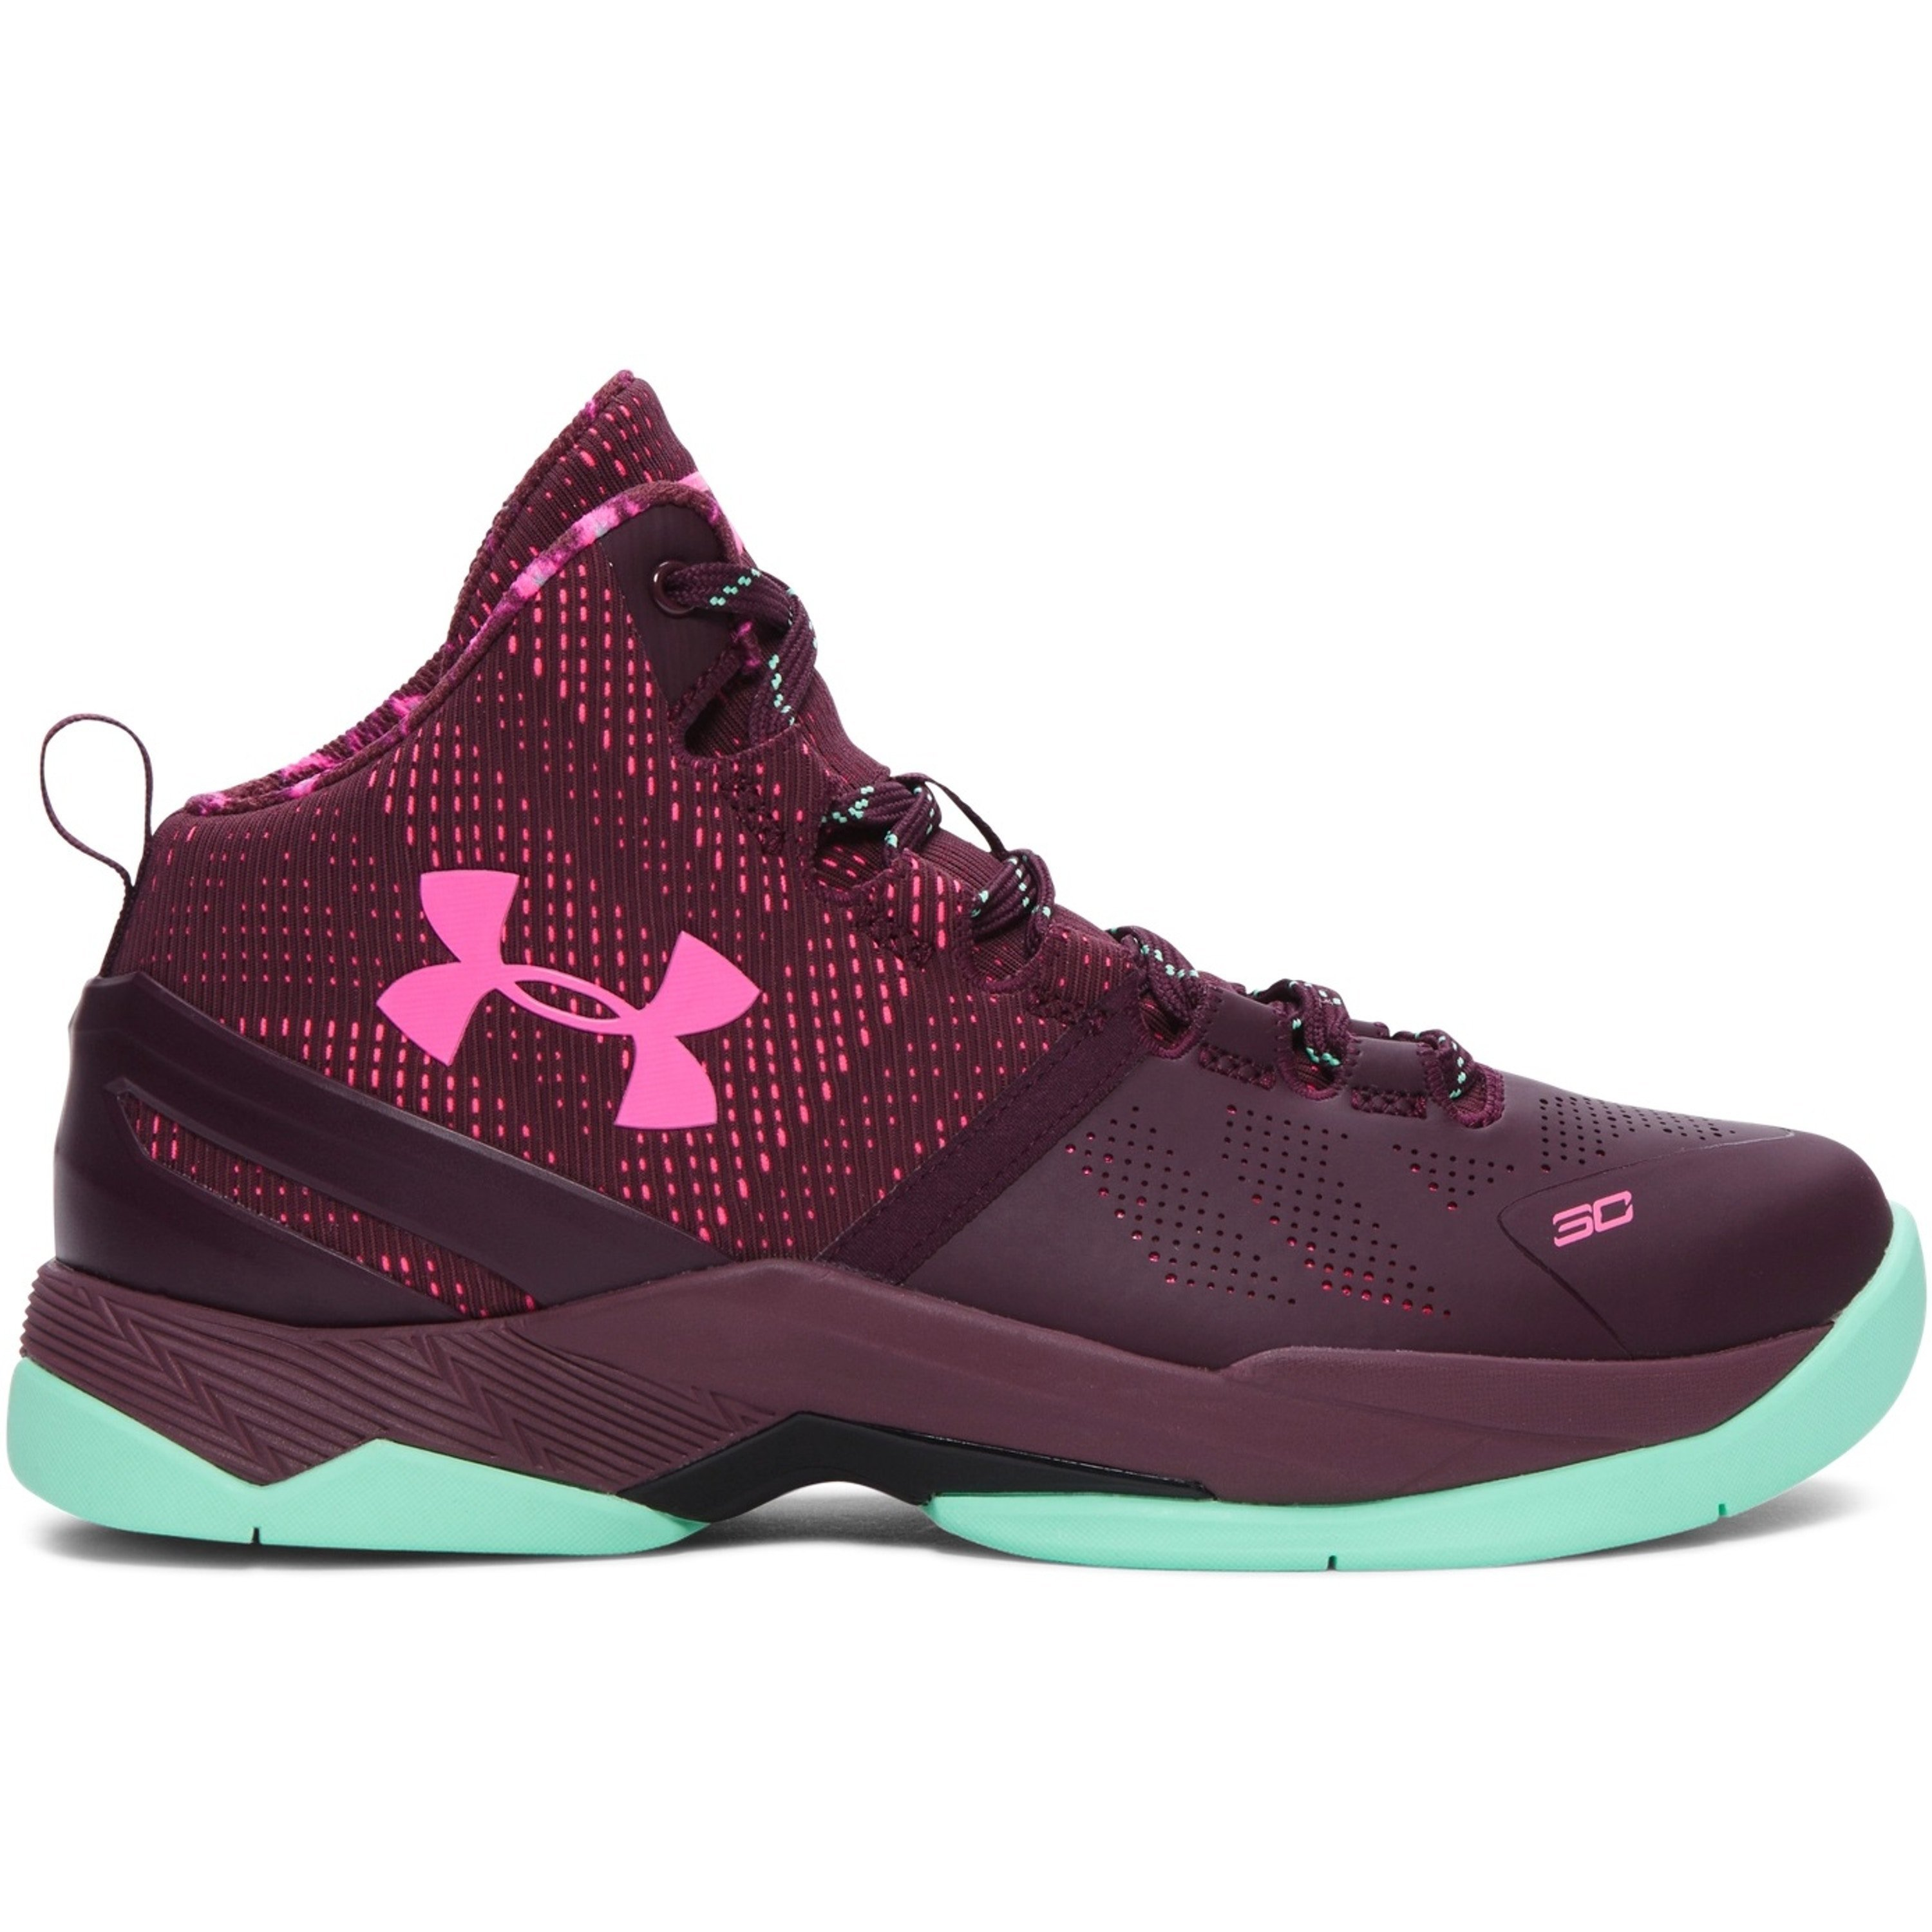 Under Armour Curry 2 Black History Month (GS) (1270817-601)